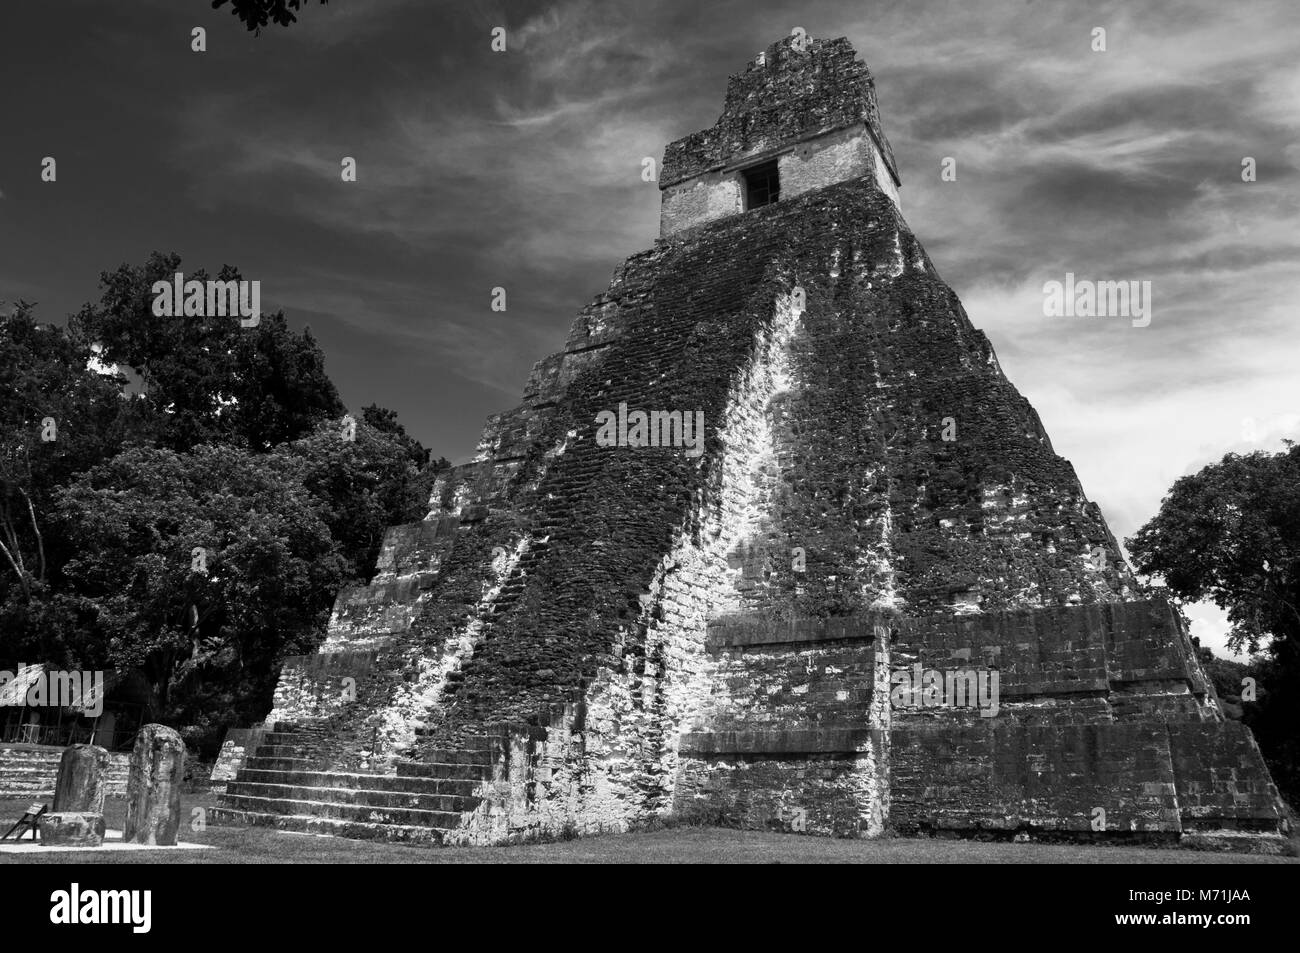 Tikal National Park, Petén, Guatemala. UNESCO Site. - Stock Image